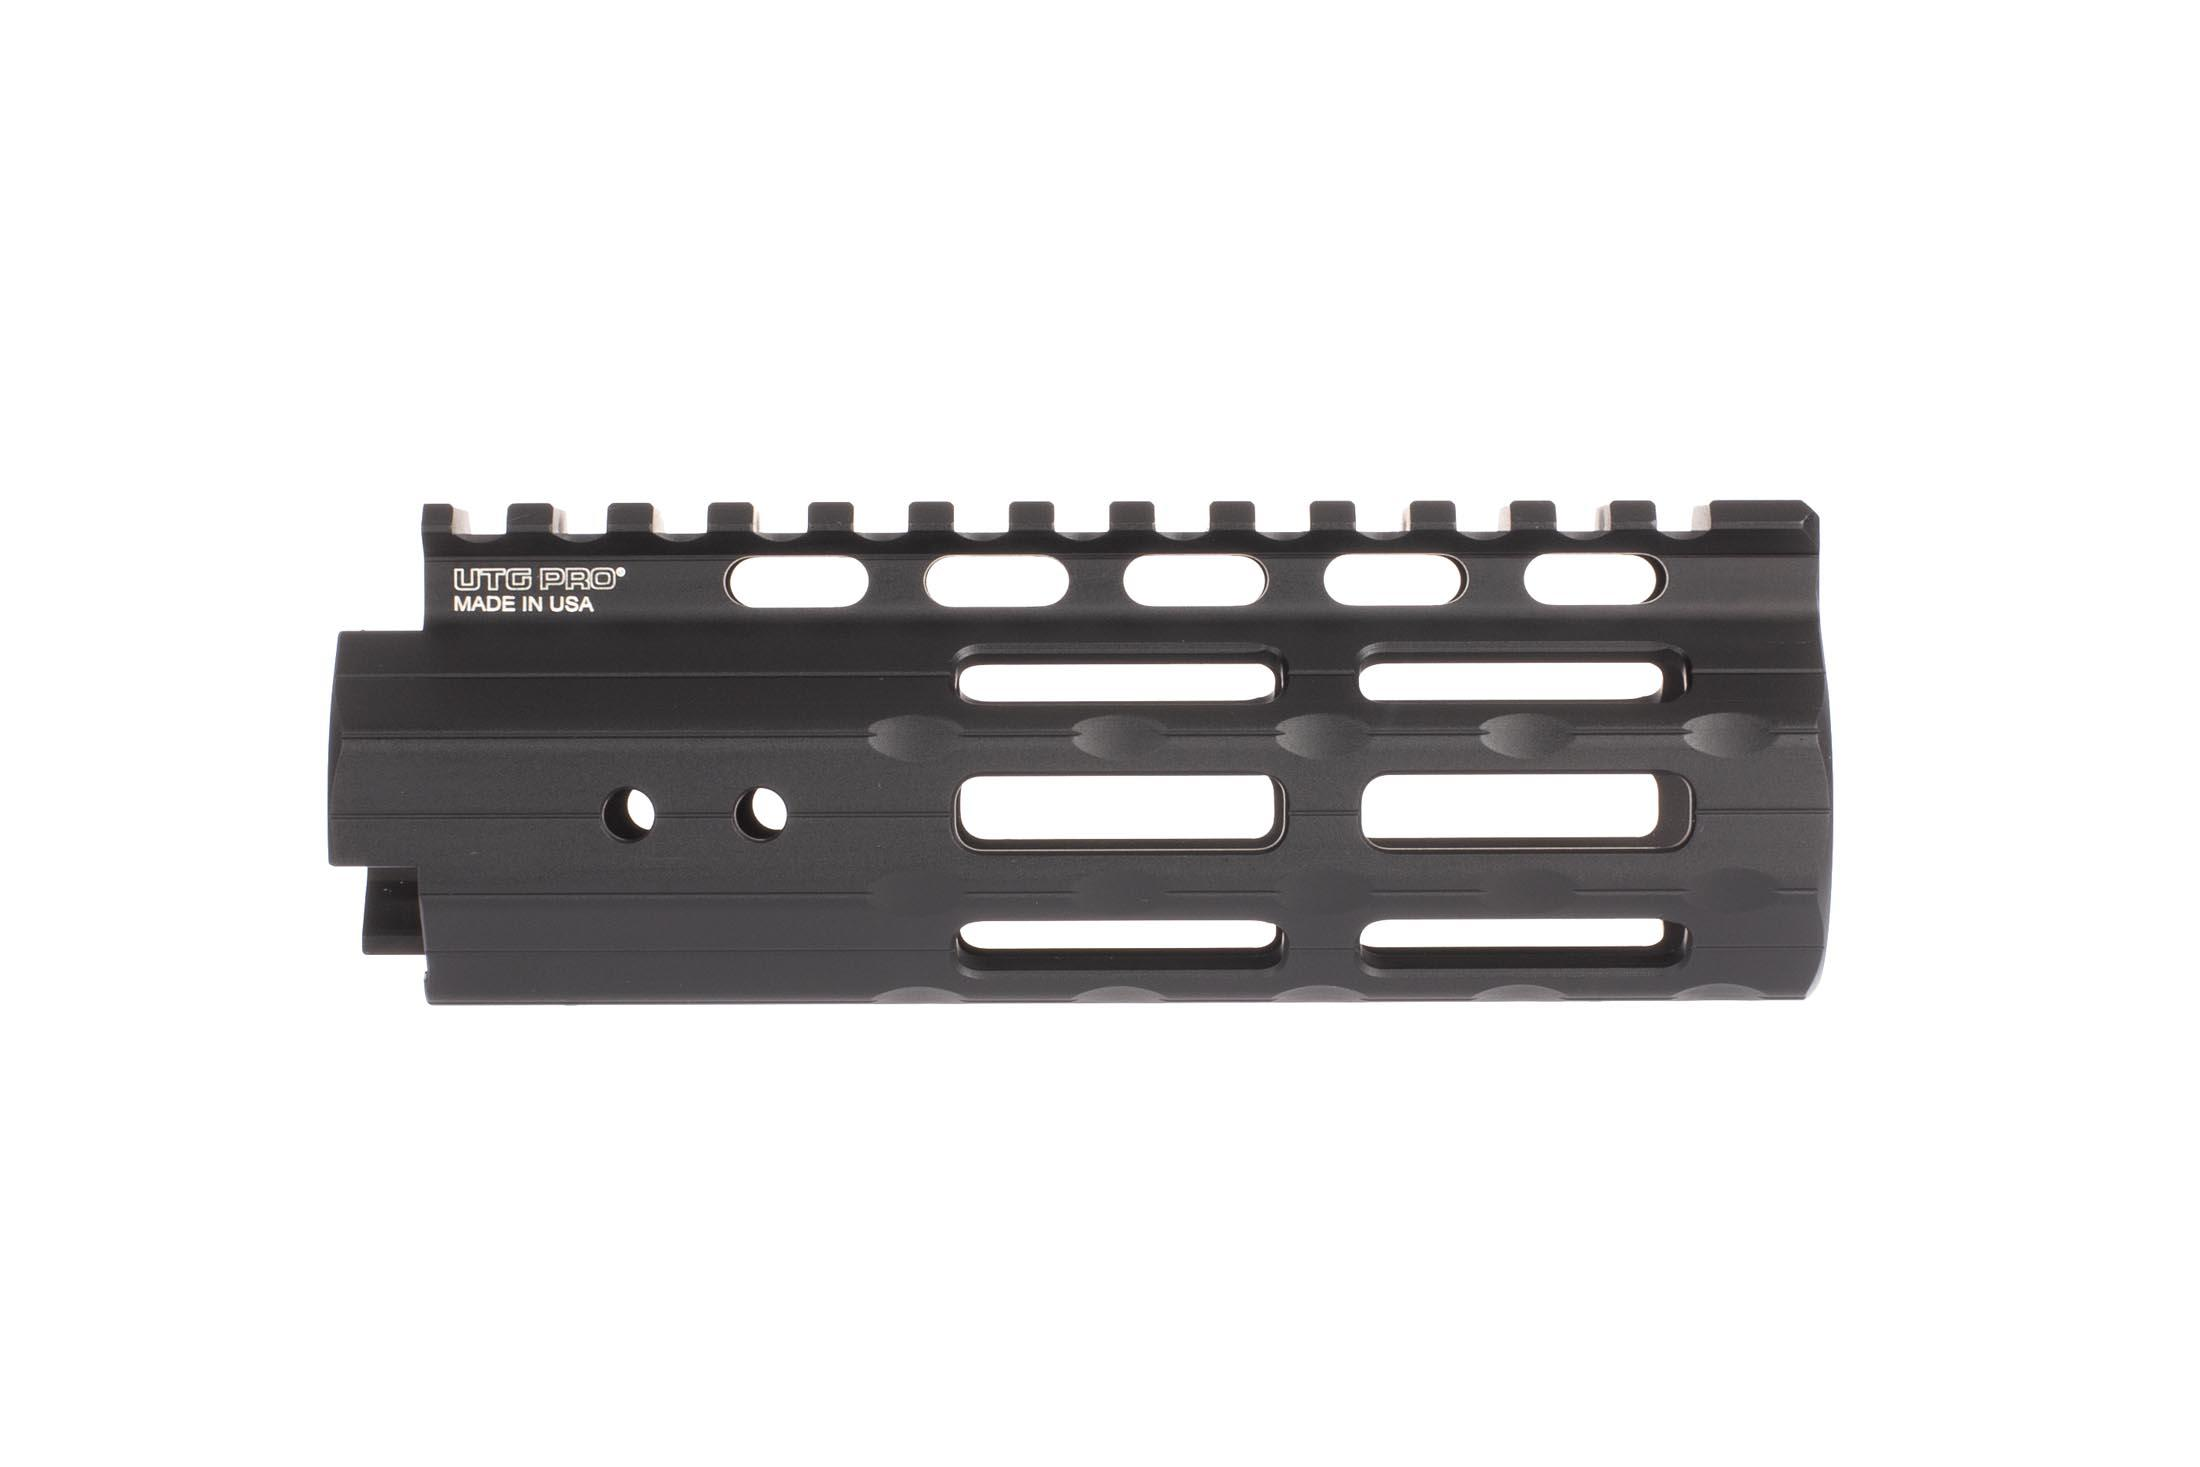 Leapers UTG PRO 5.5in Super Slim free float handguard accepts M-LOK Accessories in 28 slots on seven surfaces